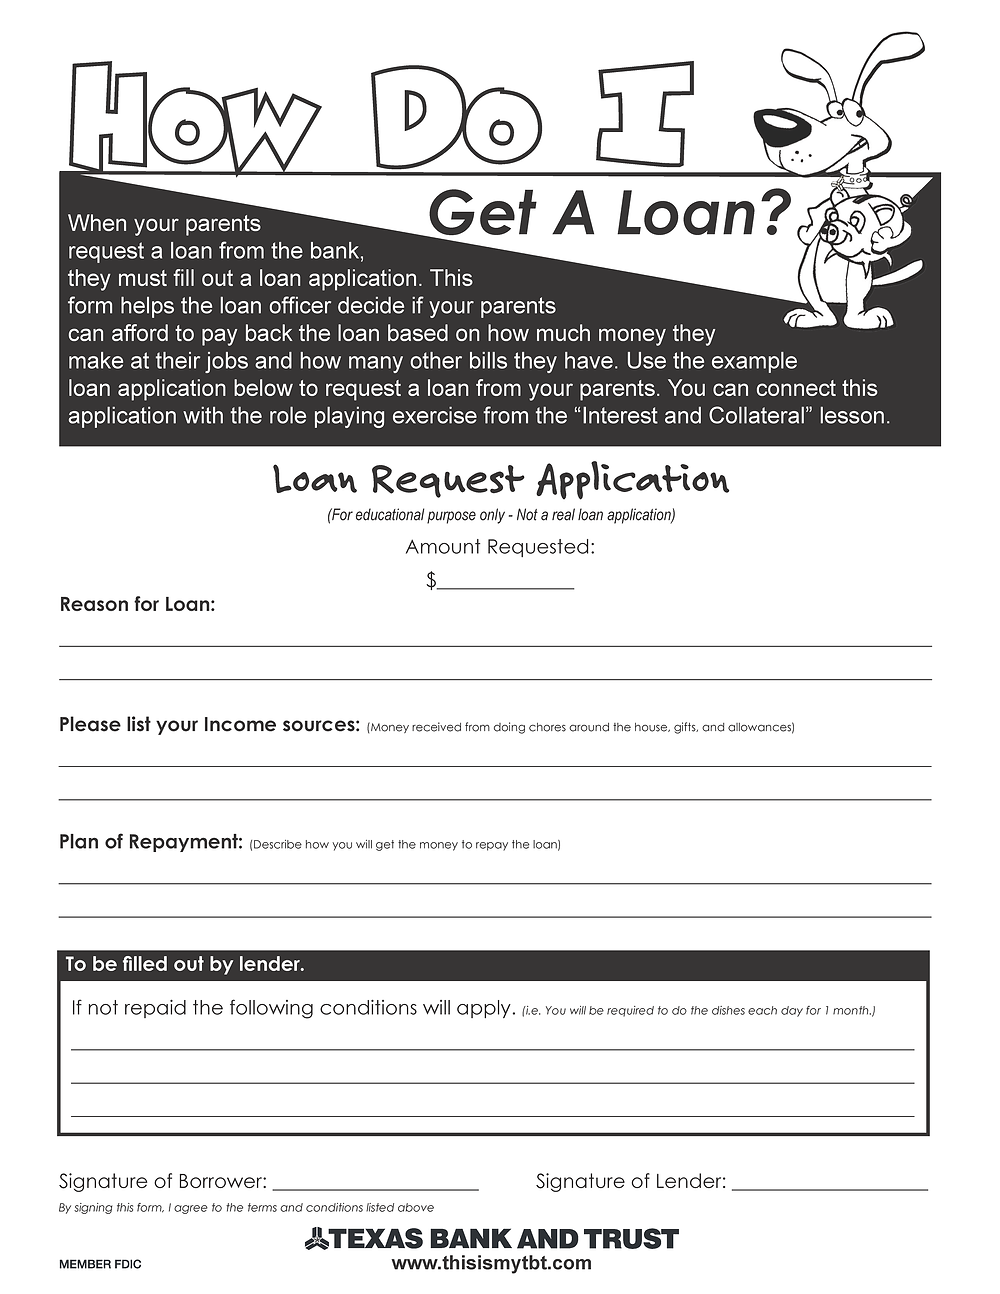 How Do I Get A Loan?